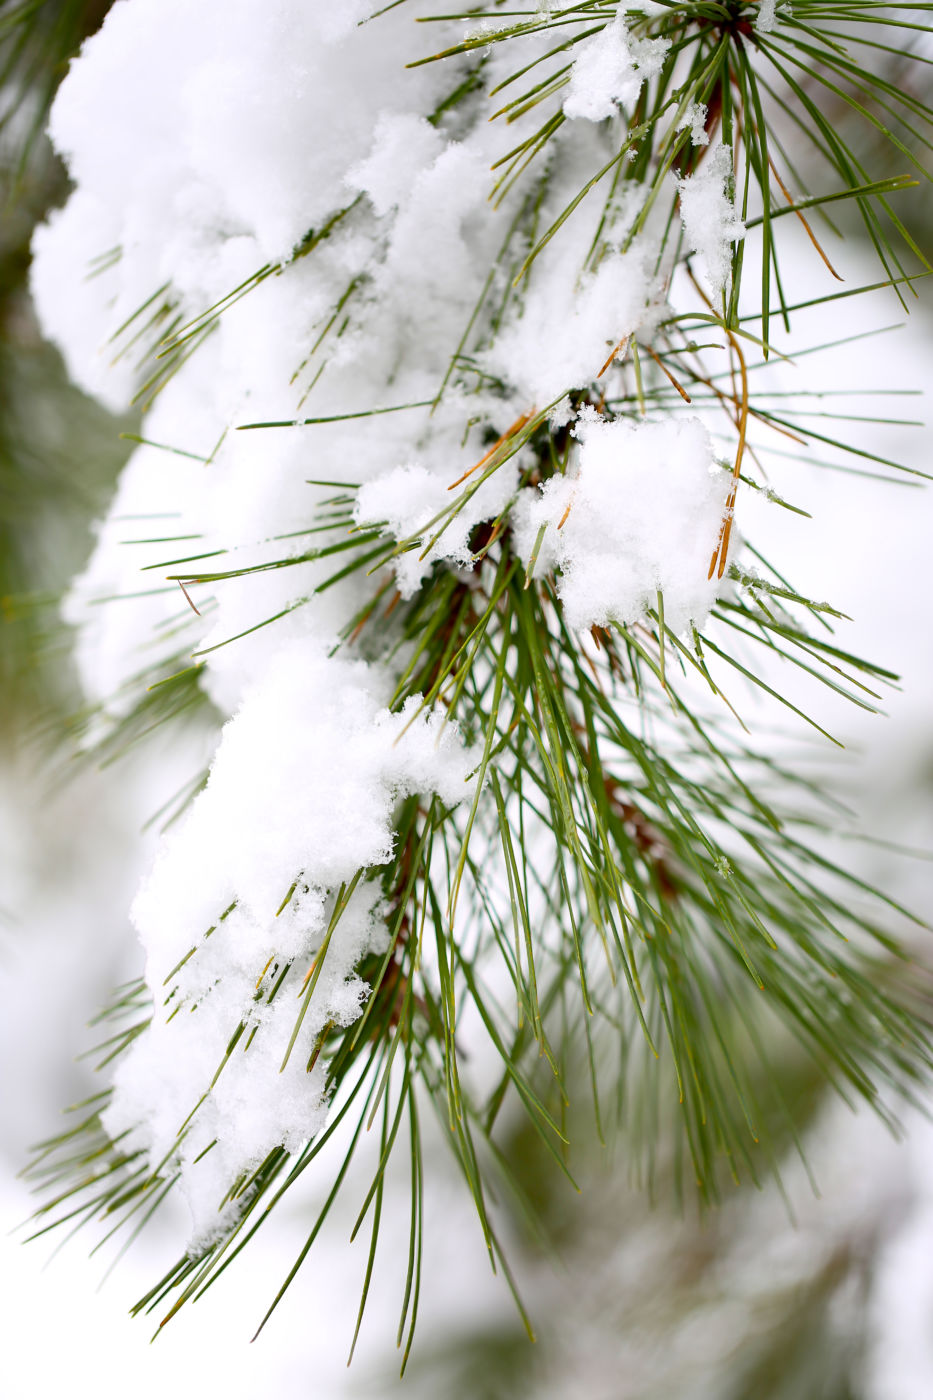 Snow-covered pine (Pinus sp.) needles